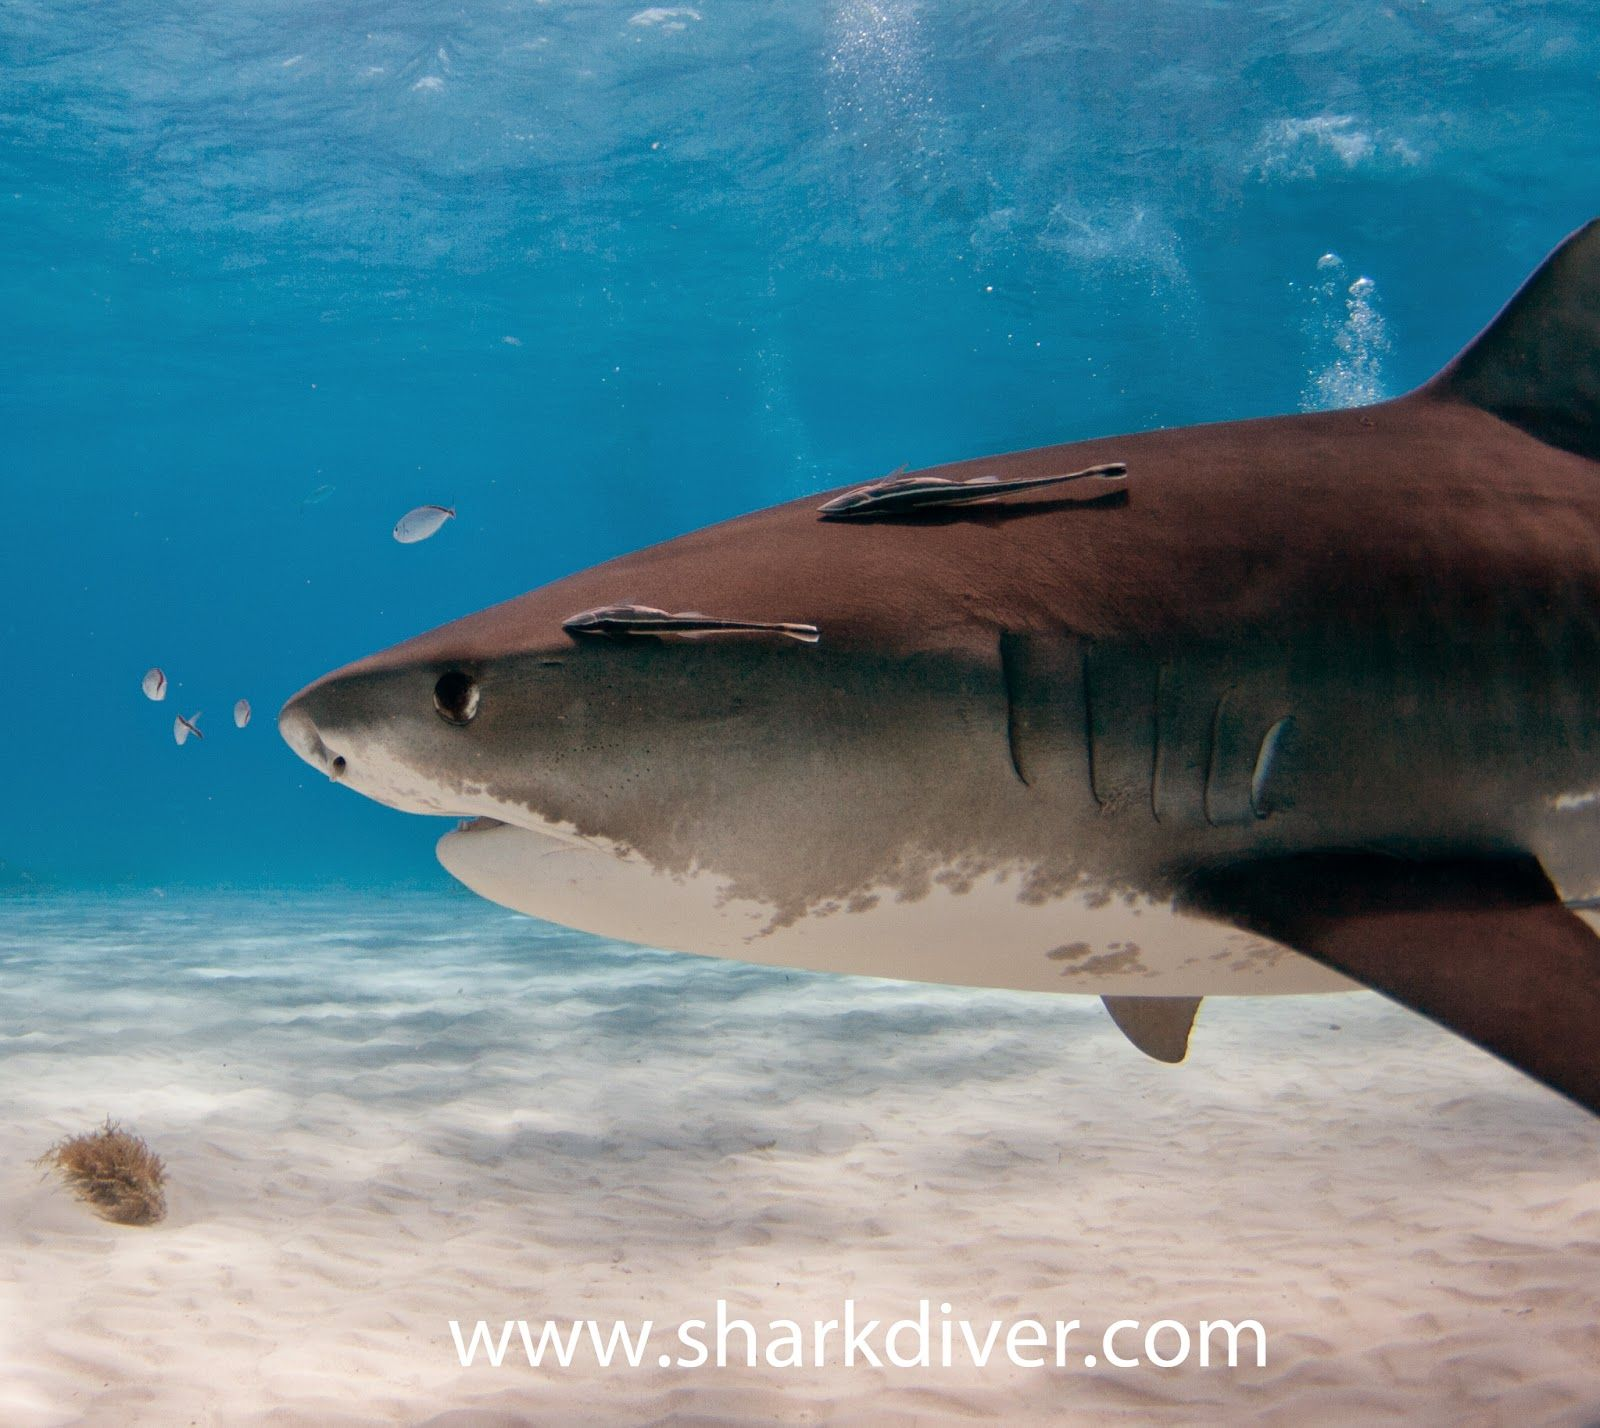 Shark Diver : Shark Diving : Swimming With Sharks: What's